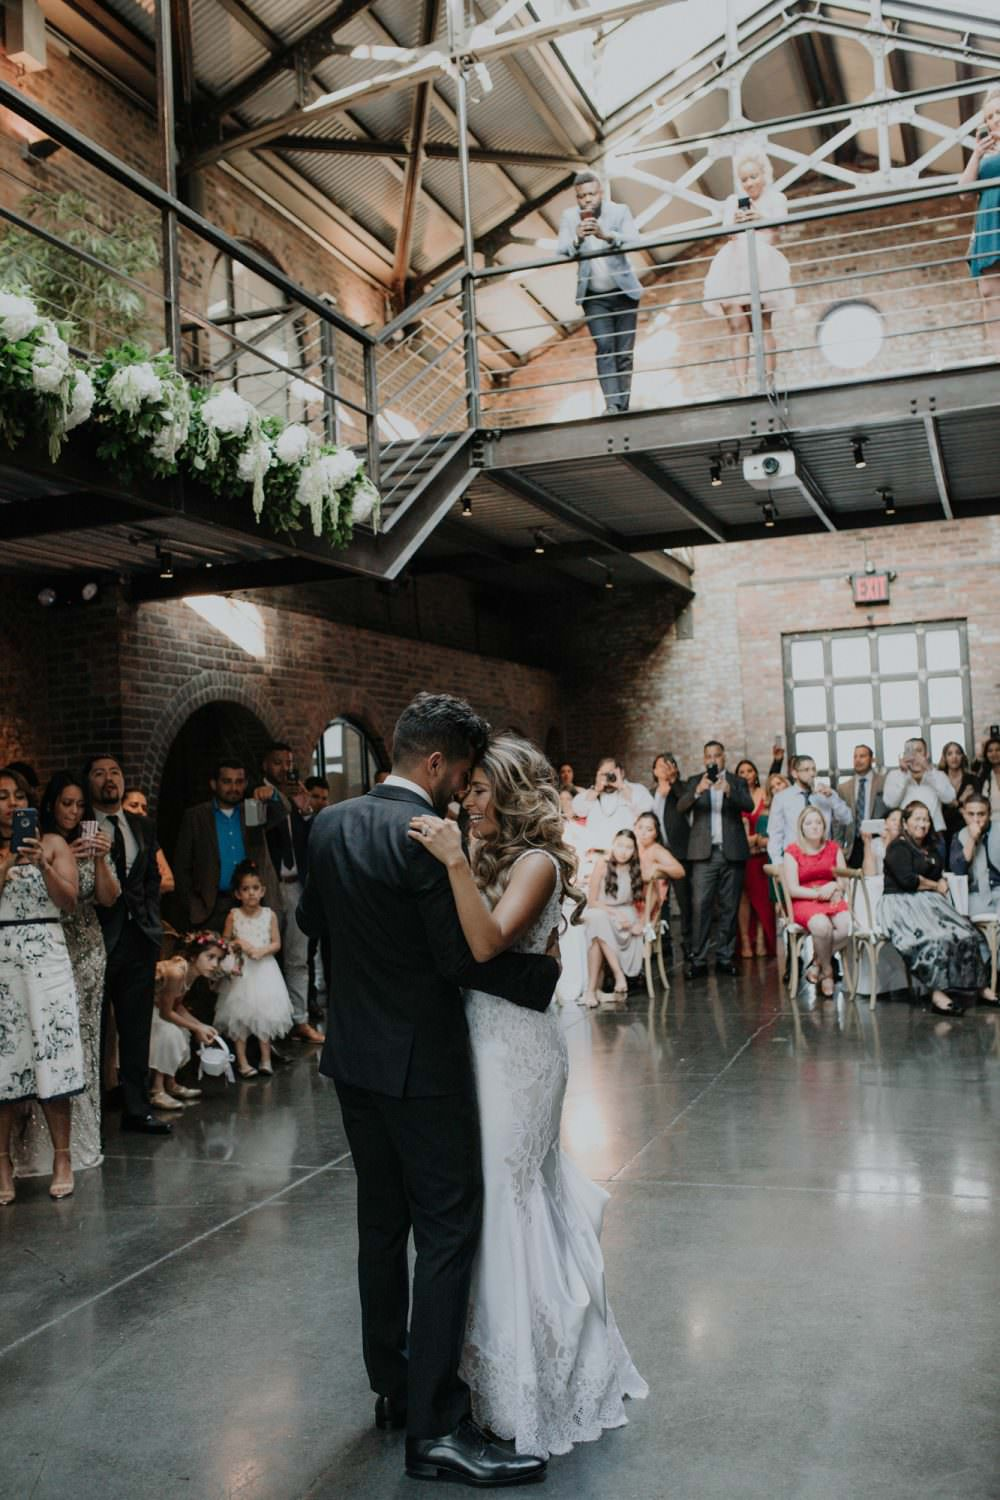 Bride and Groom's first dance at The Foundry